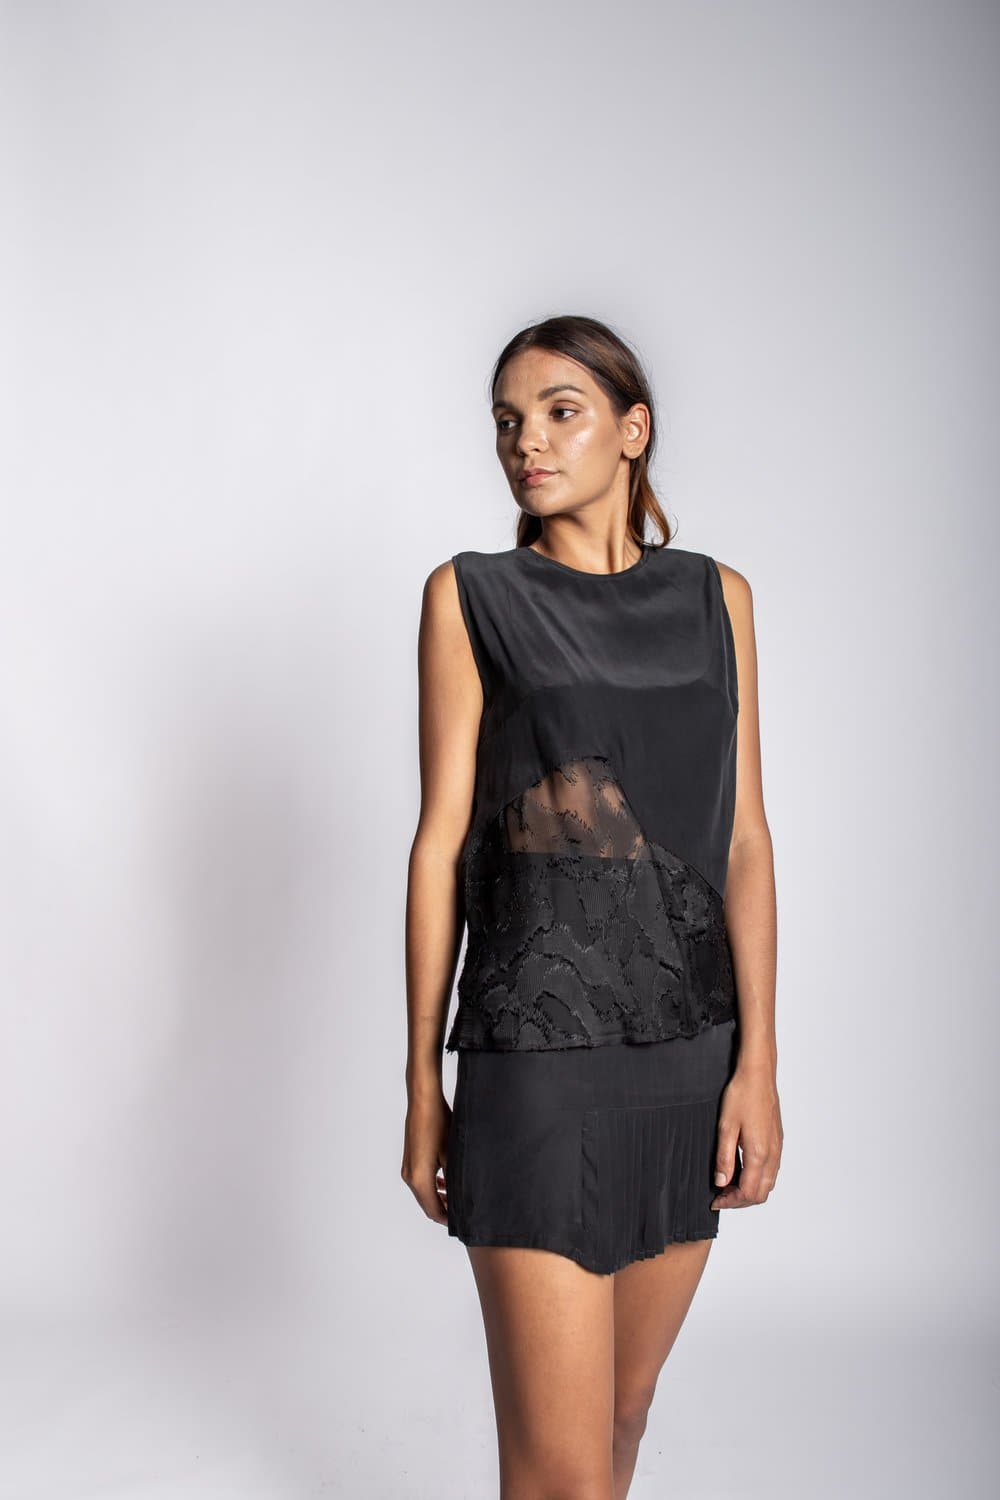 Silk Burnout Tank tops Karen Thomas NY